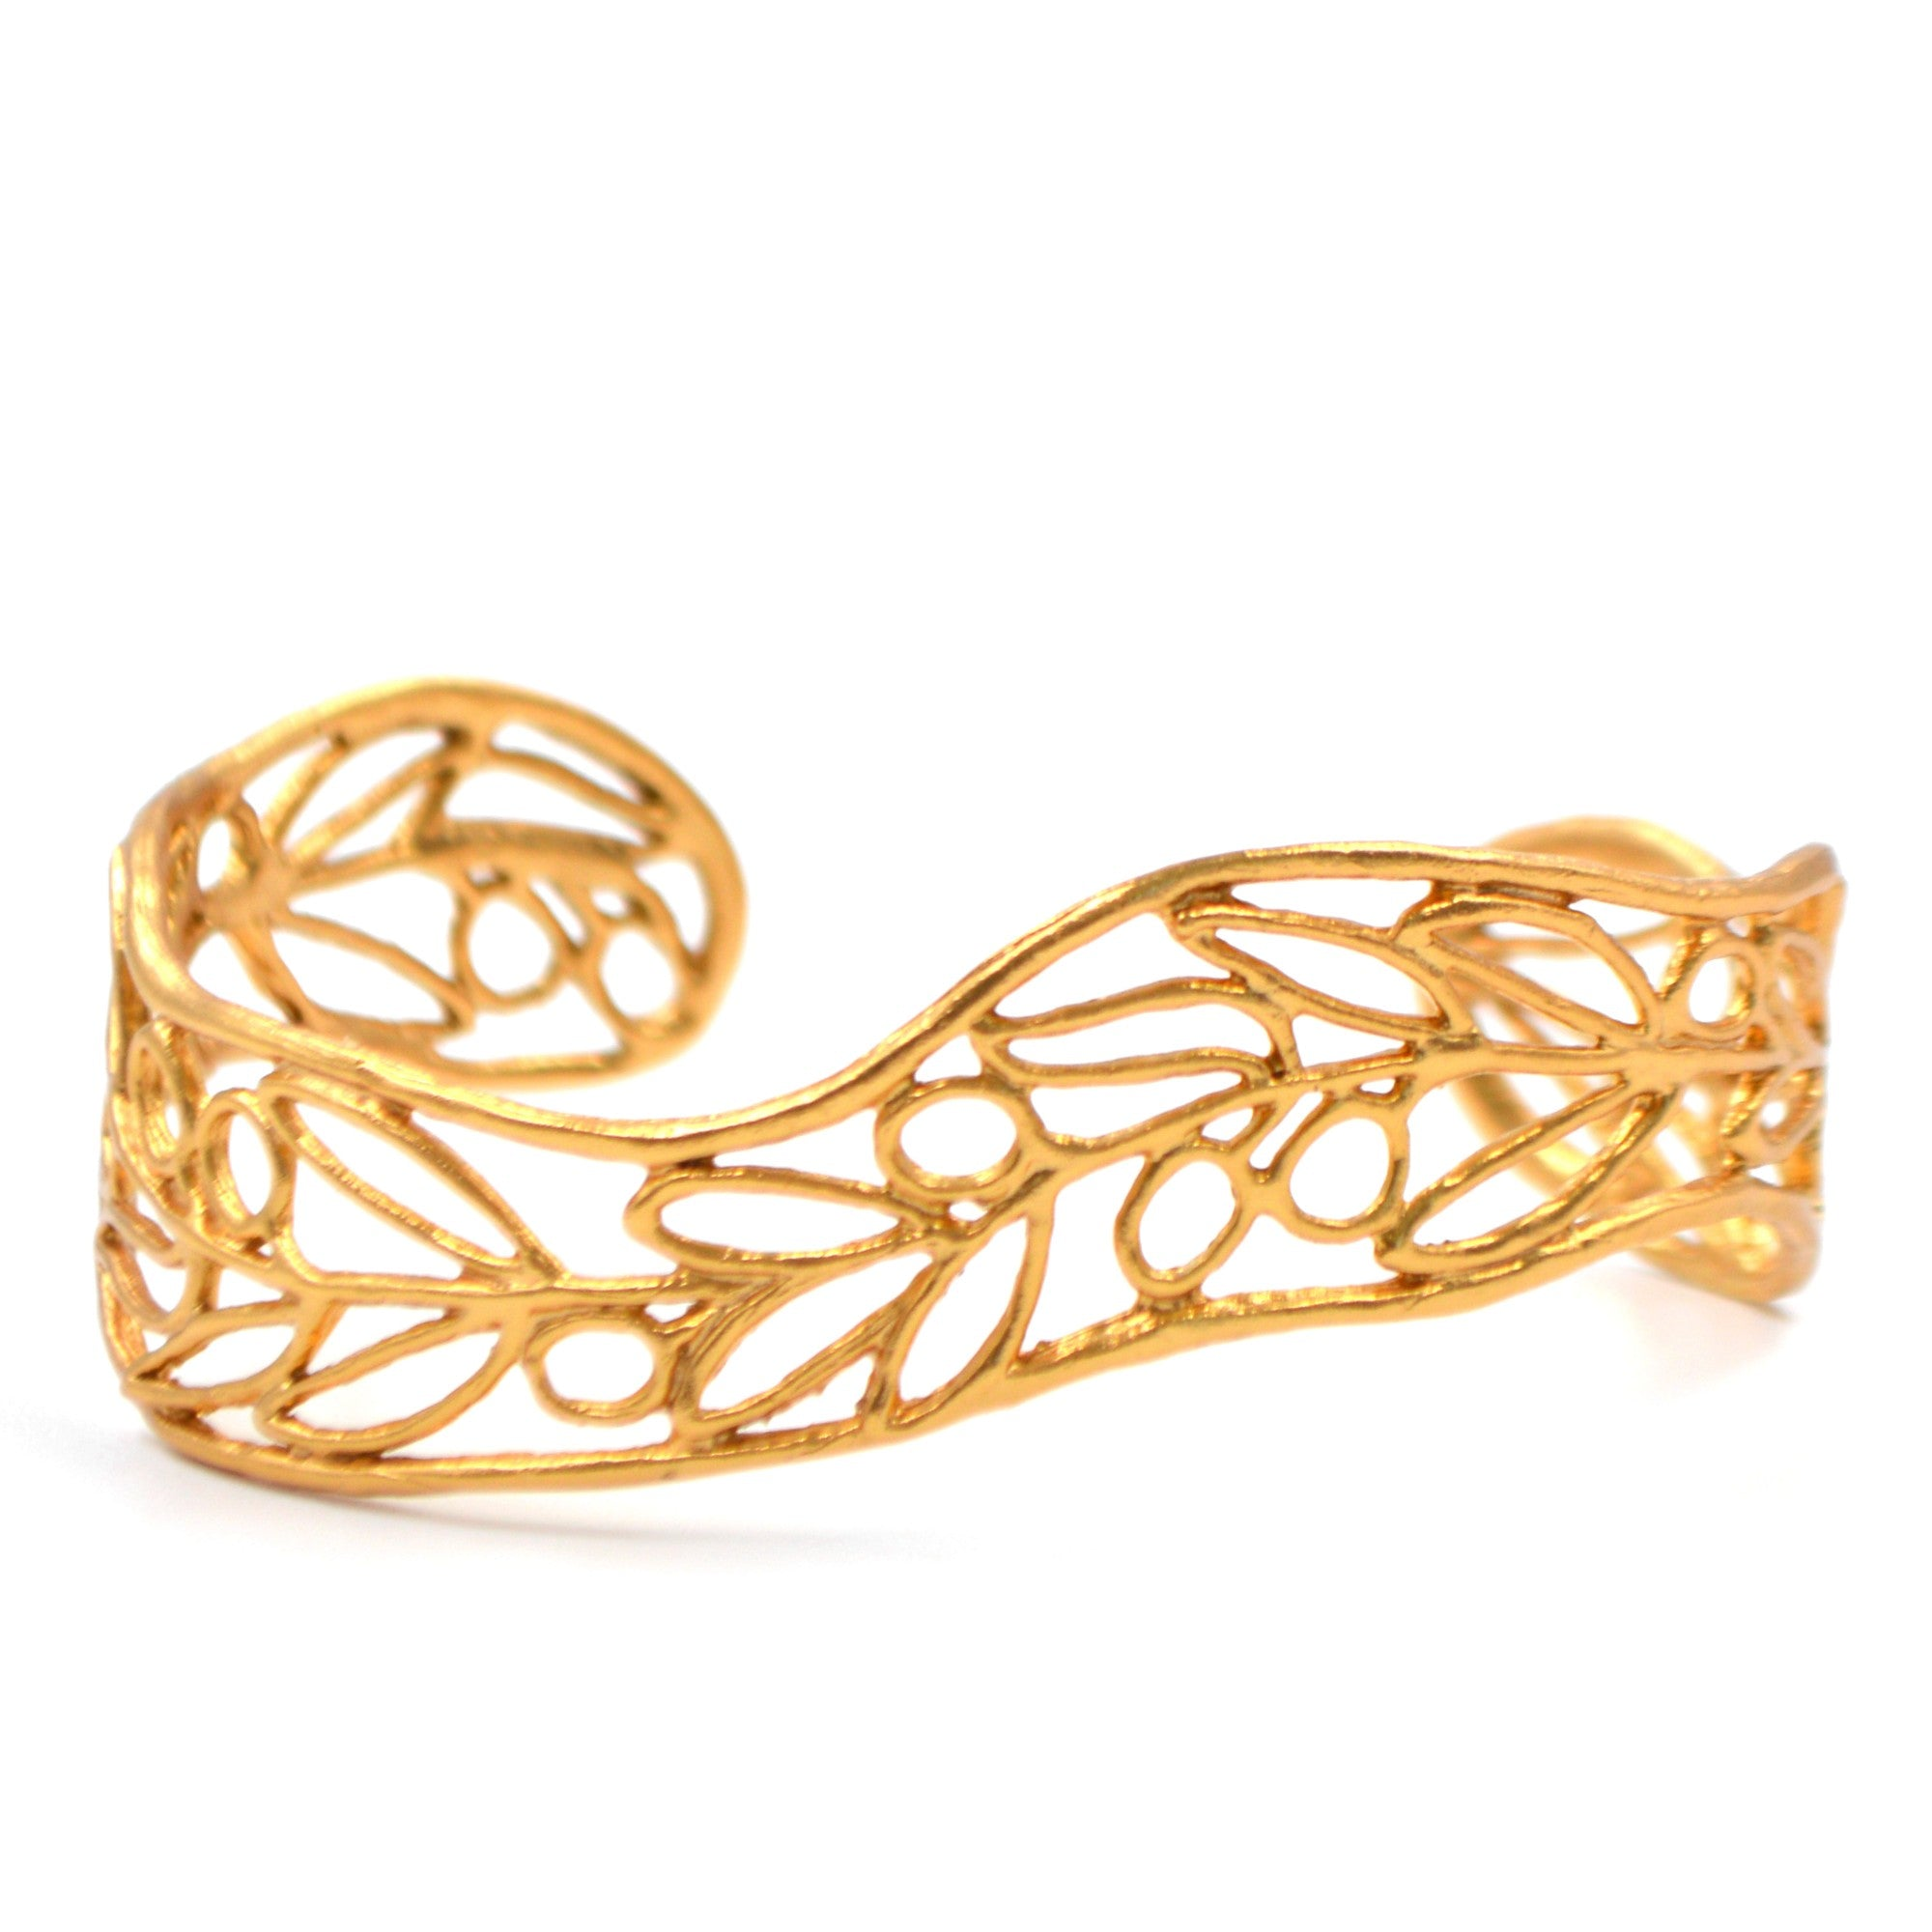 g gold bracelet bangle jewelry